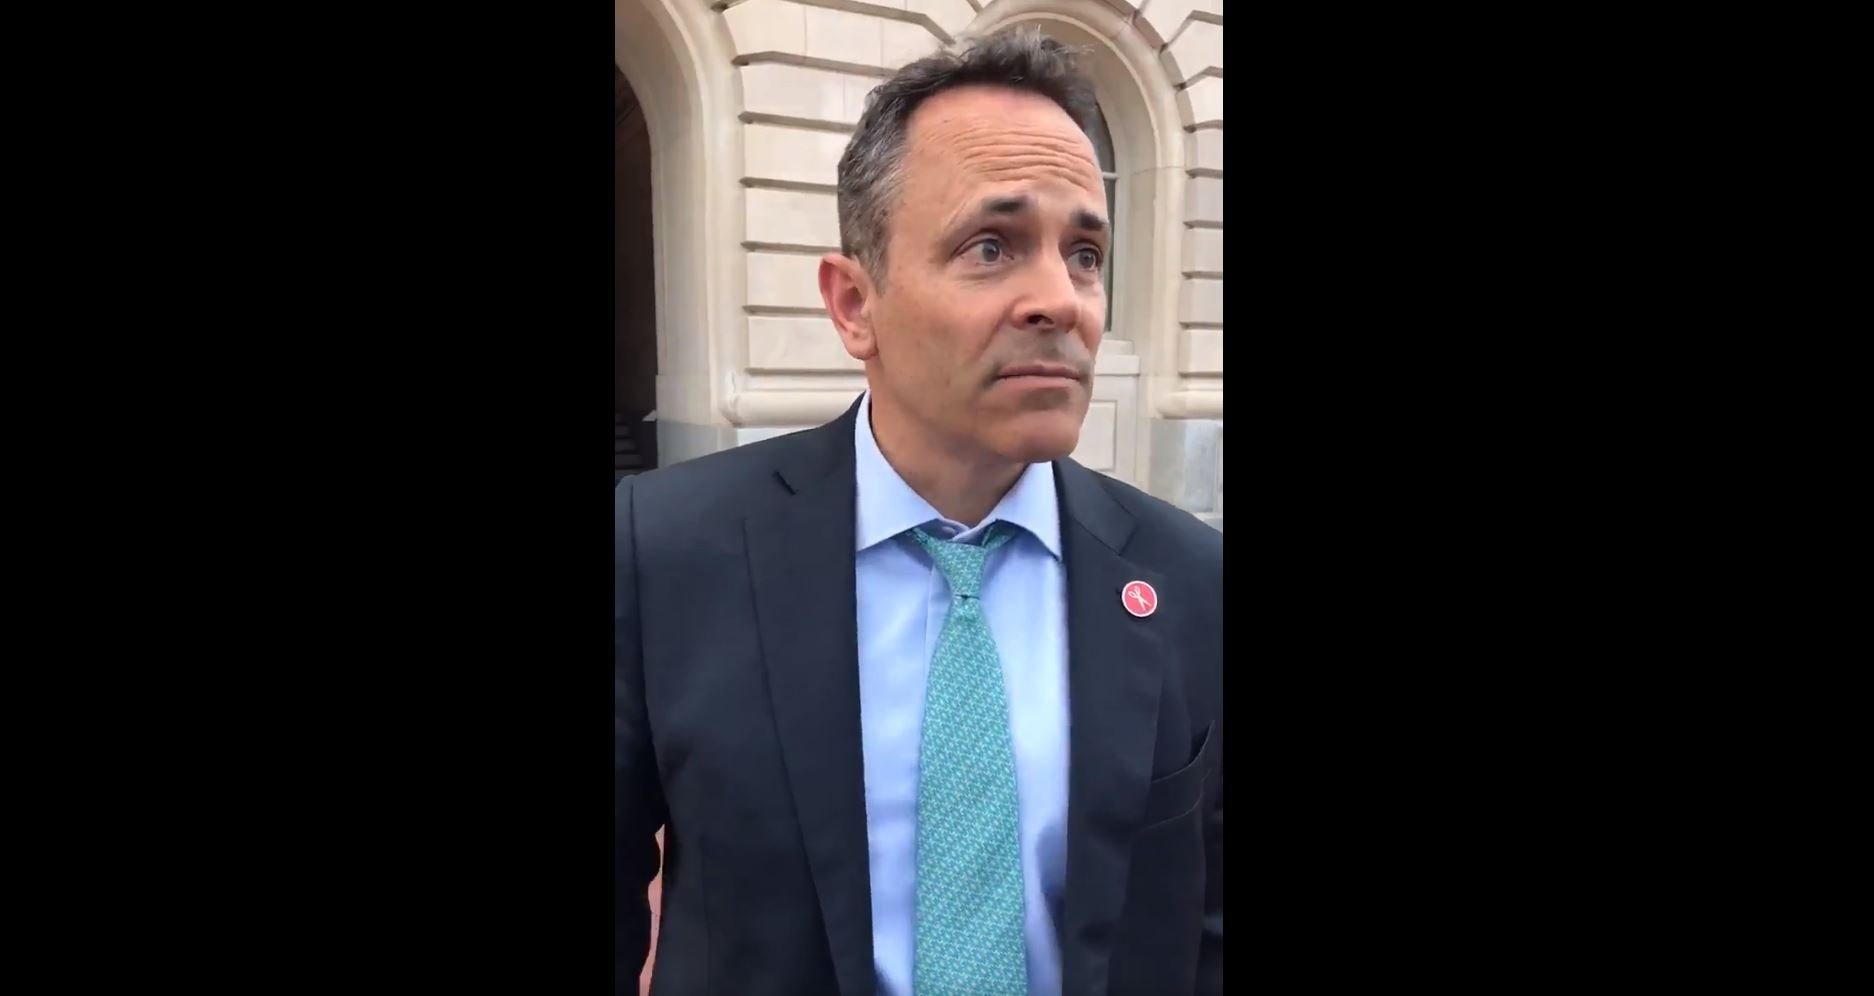 Kentucky governor under fire for comments on teachers